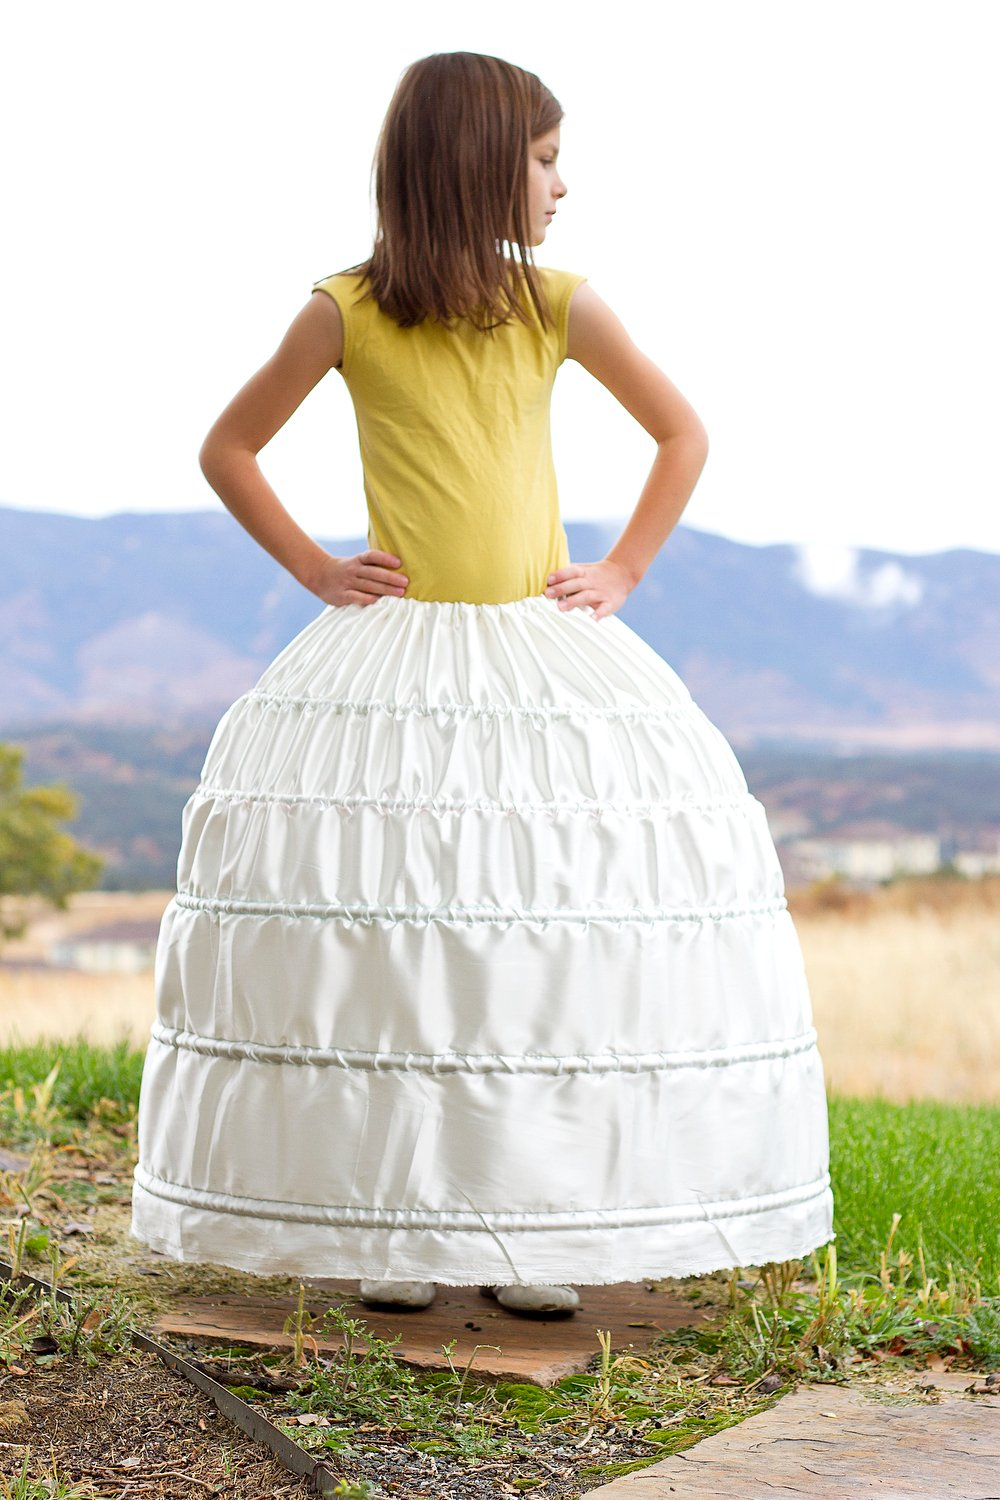 A HOOP SKIRT (…a sturdy and inexpensive version)